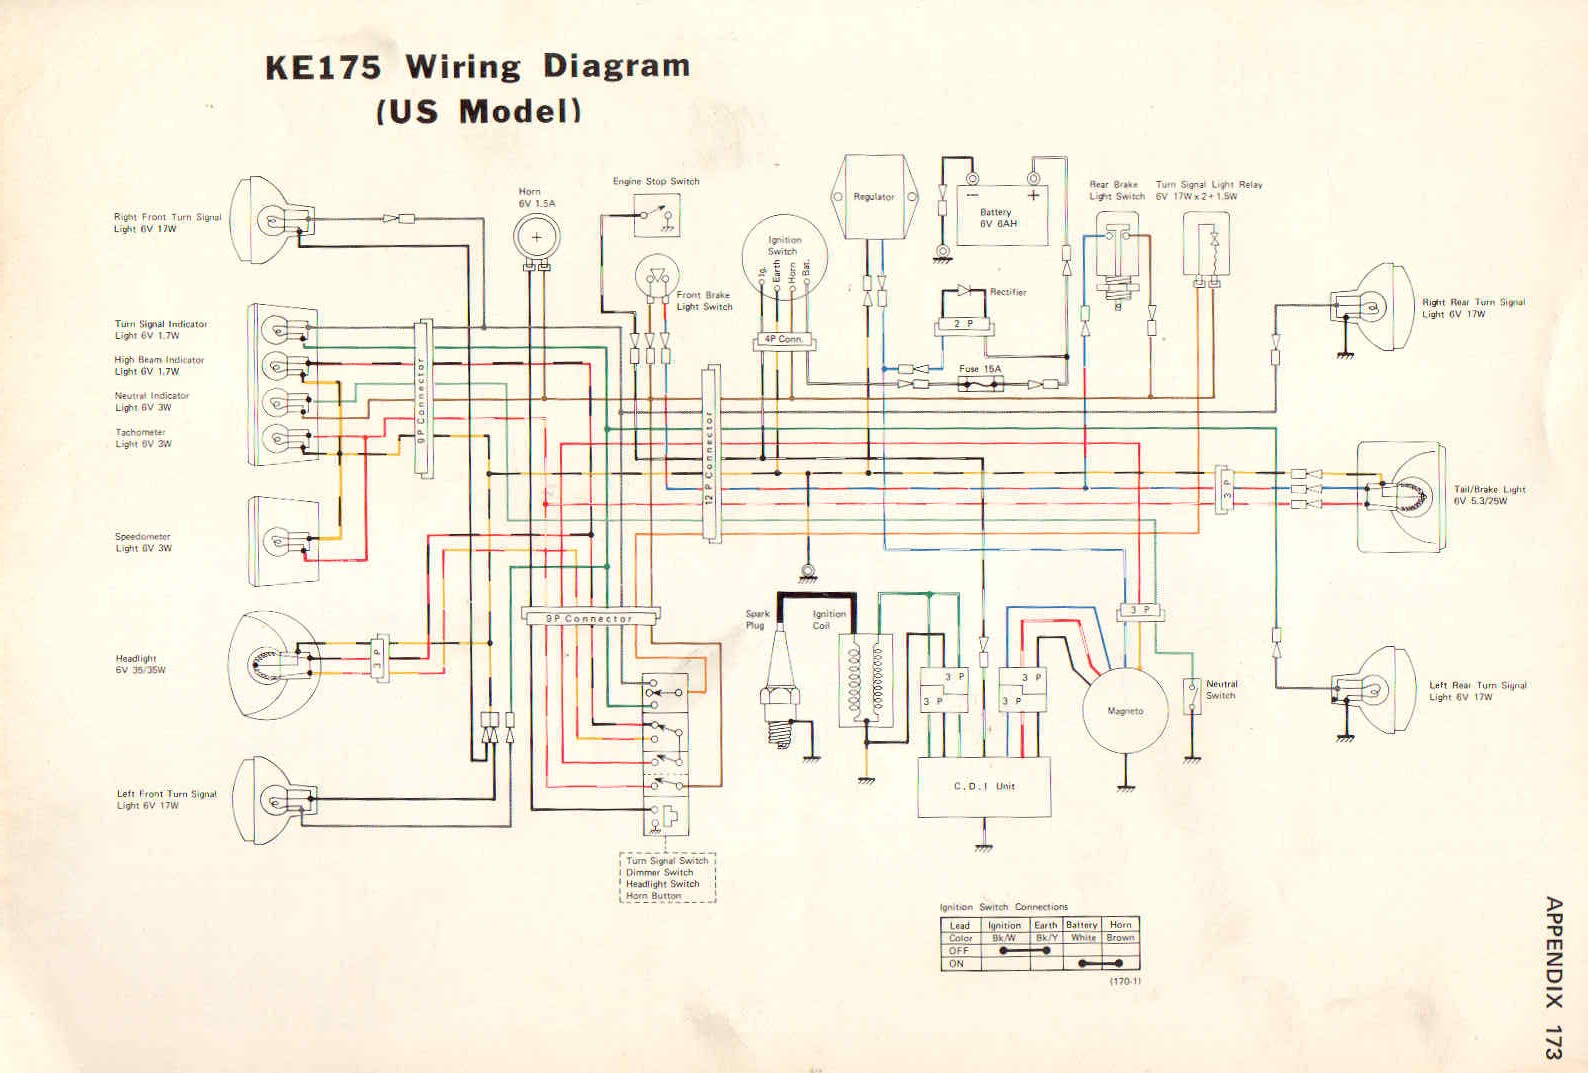 hight resolution of 1975 kawasaki 100 wiring diagram wiring library rh 71 bloxhuette de 1976 yamaha dt 175 1972 yamaha dt 175